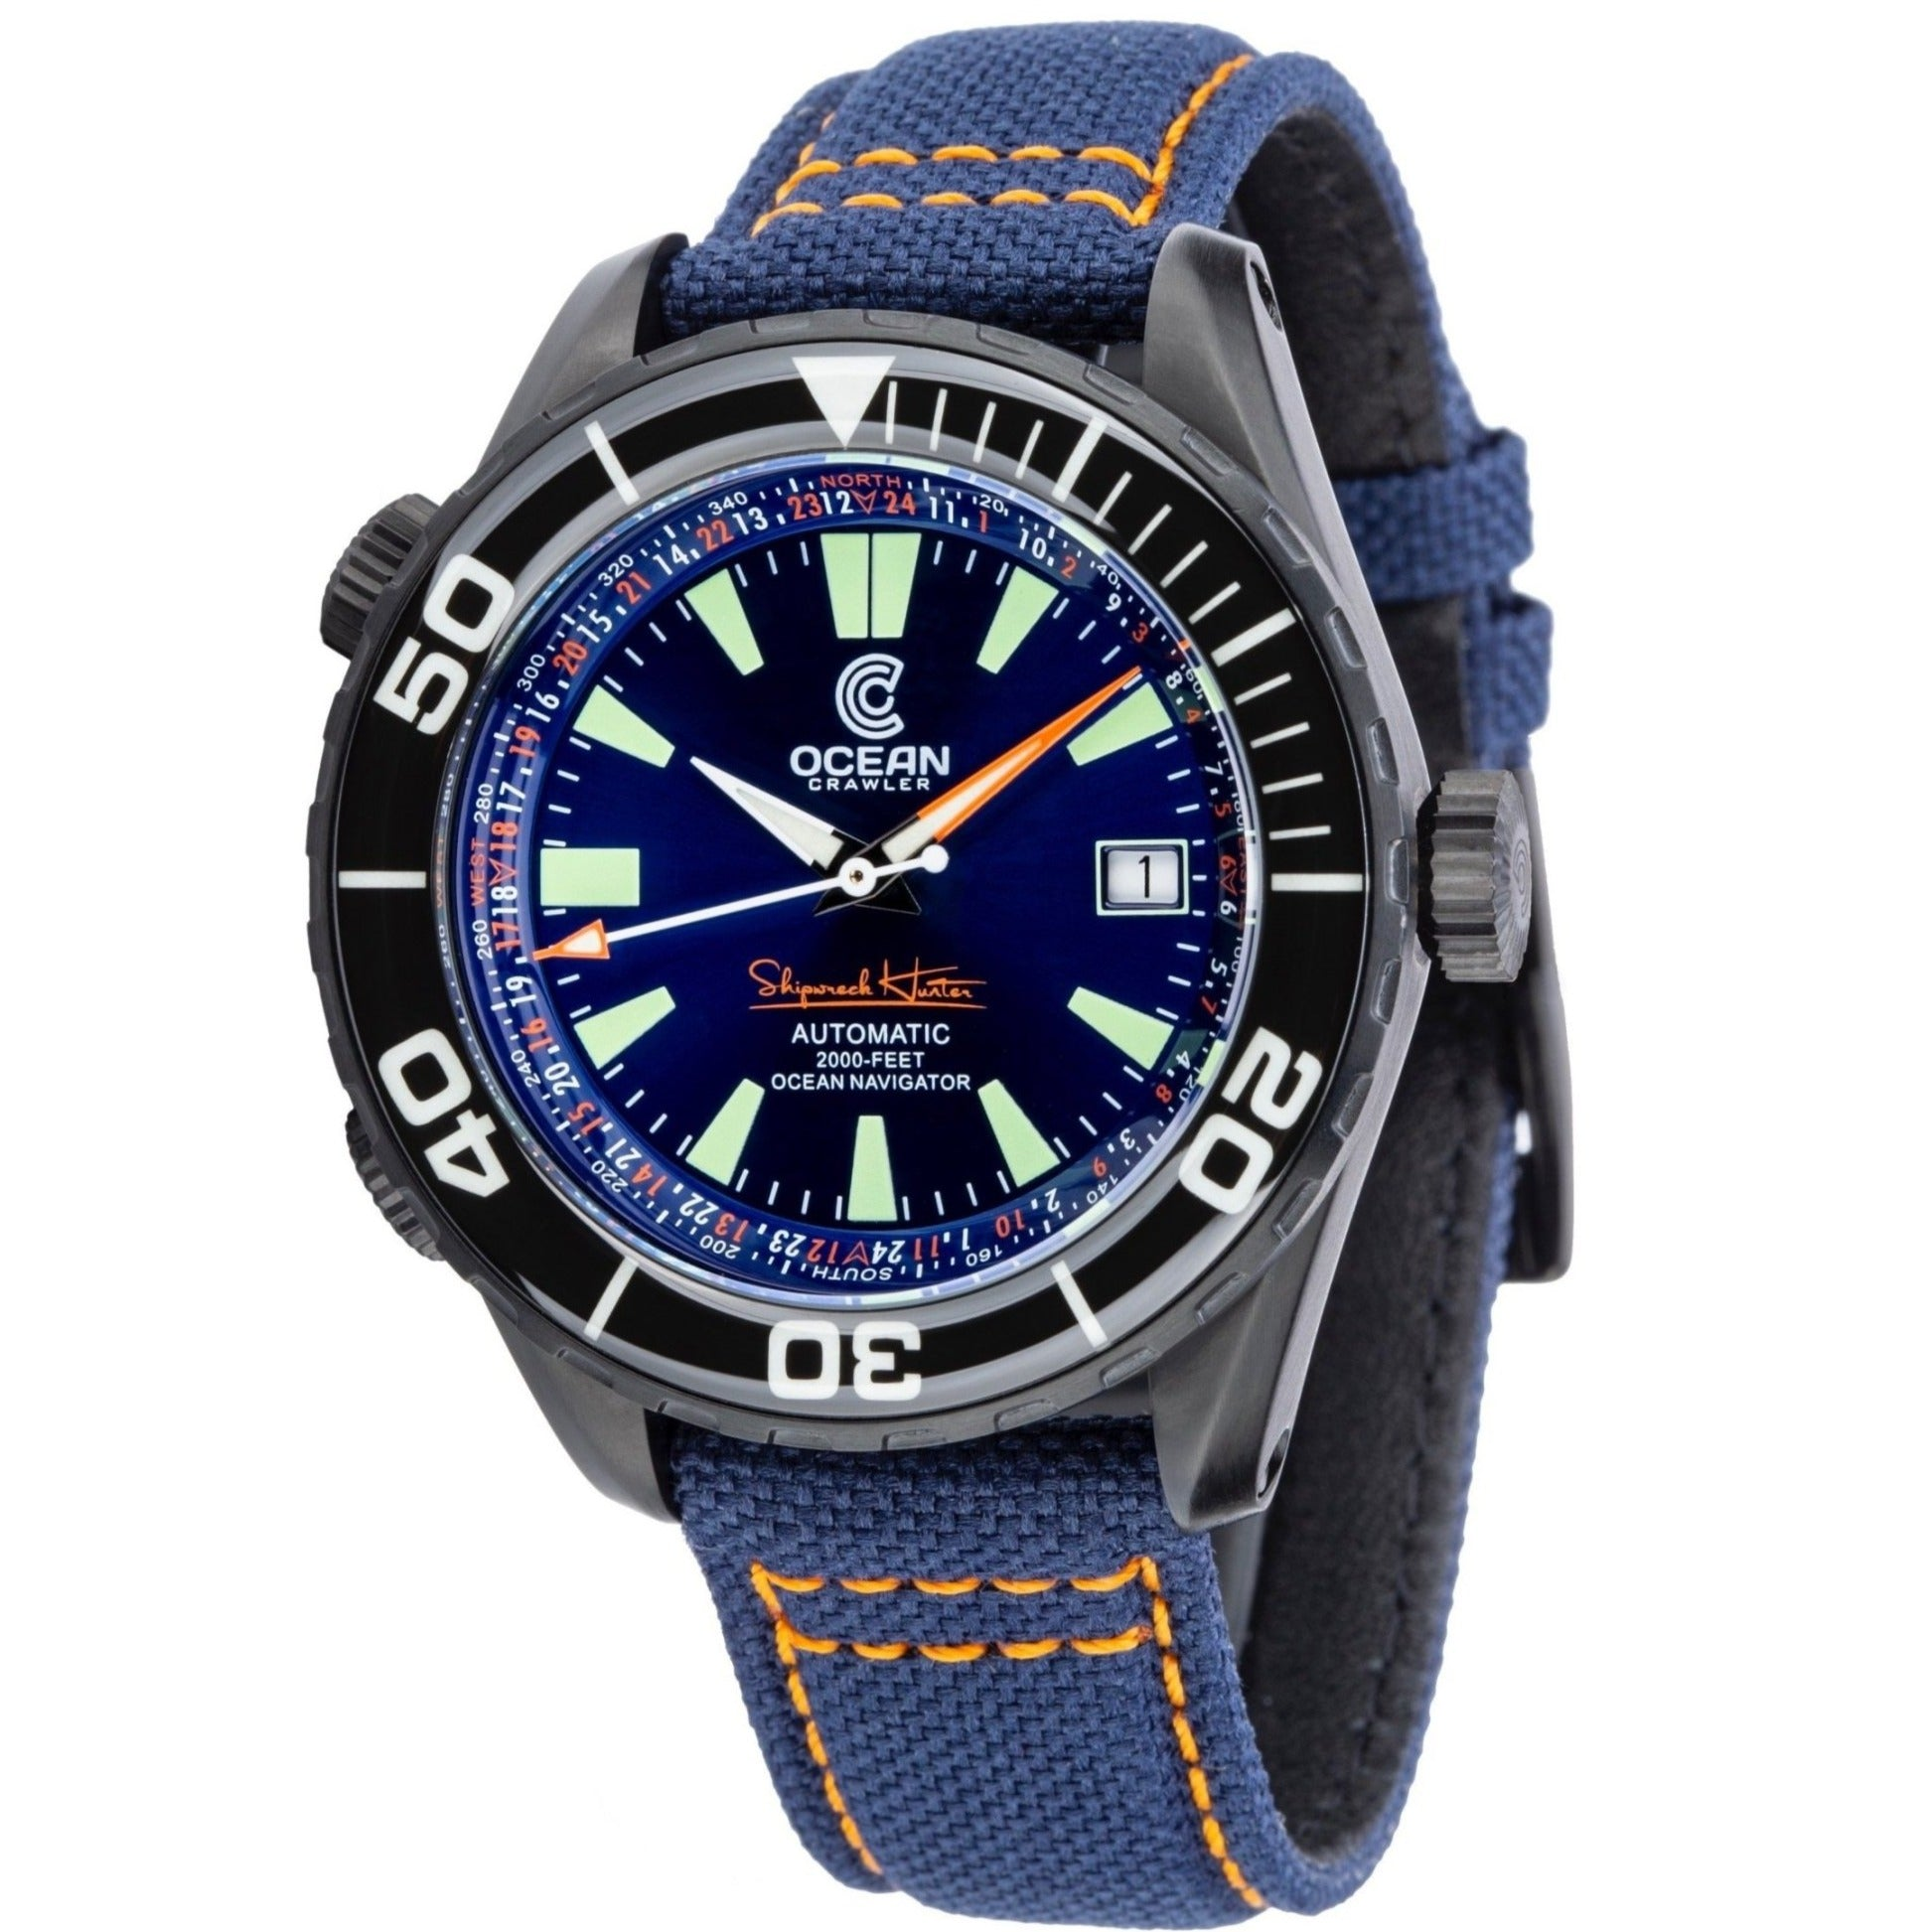 Ocean Crawler Ocean Navigator - DLC - Blue - Ocean Crawler Watch Co.